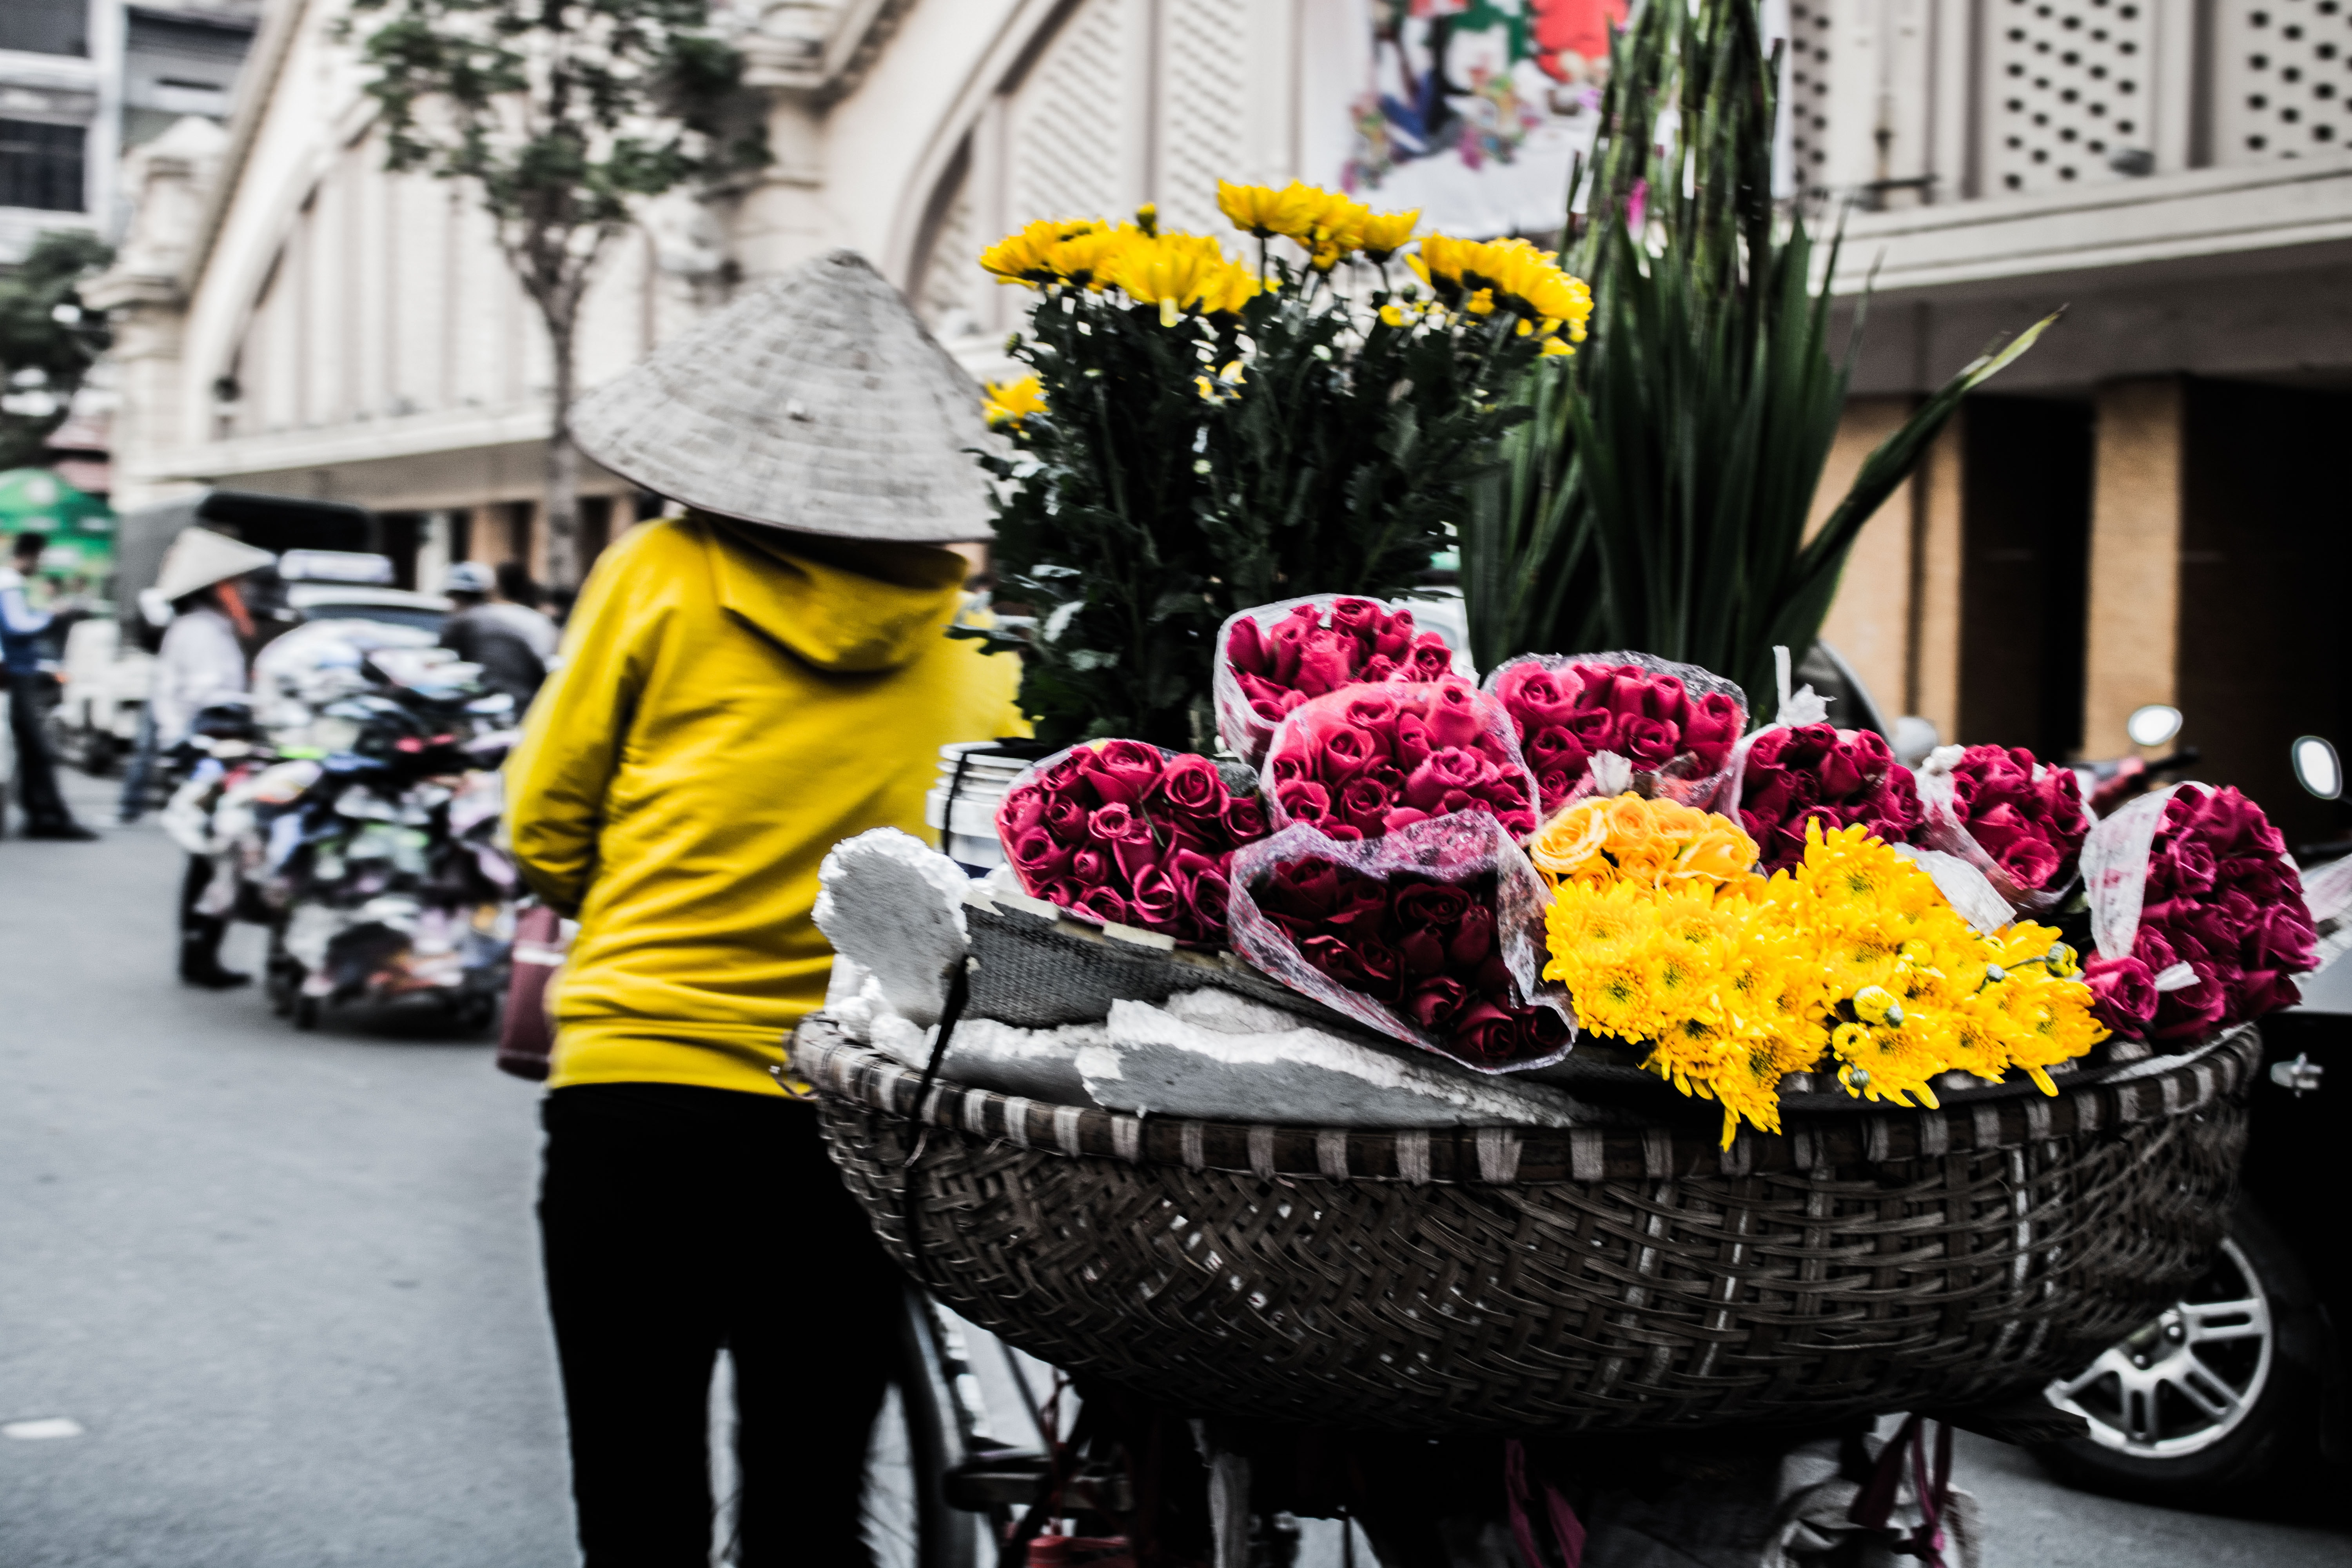 A woman pulling a cart full of flowers.